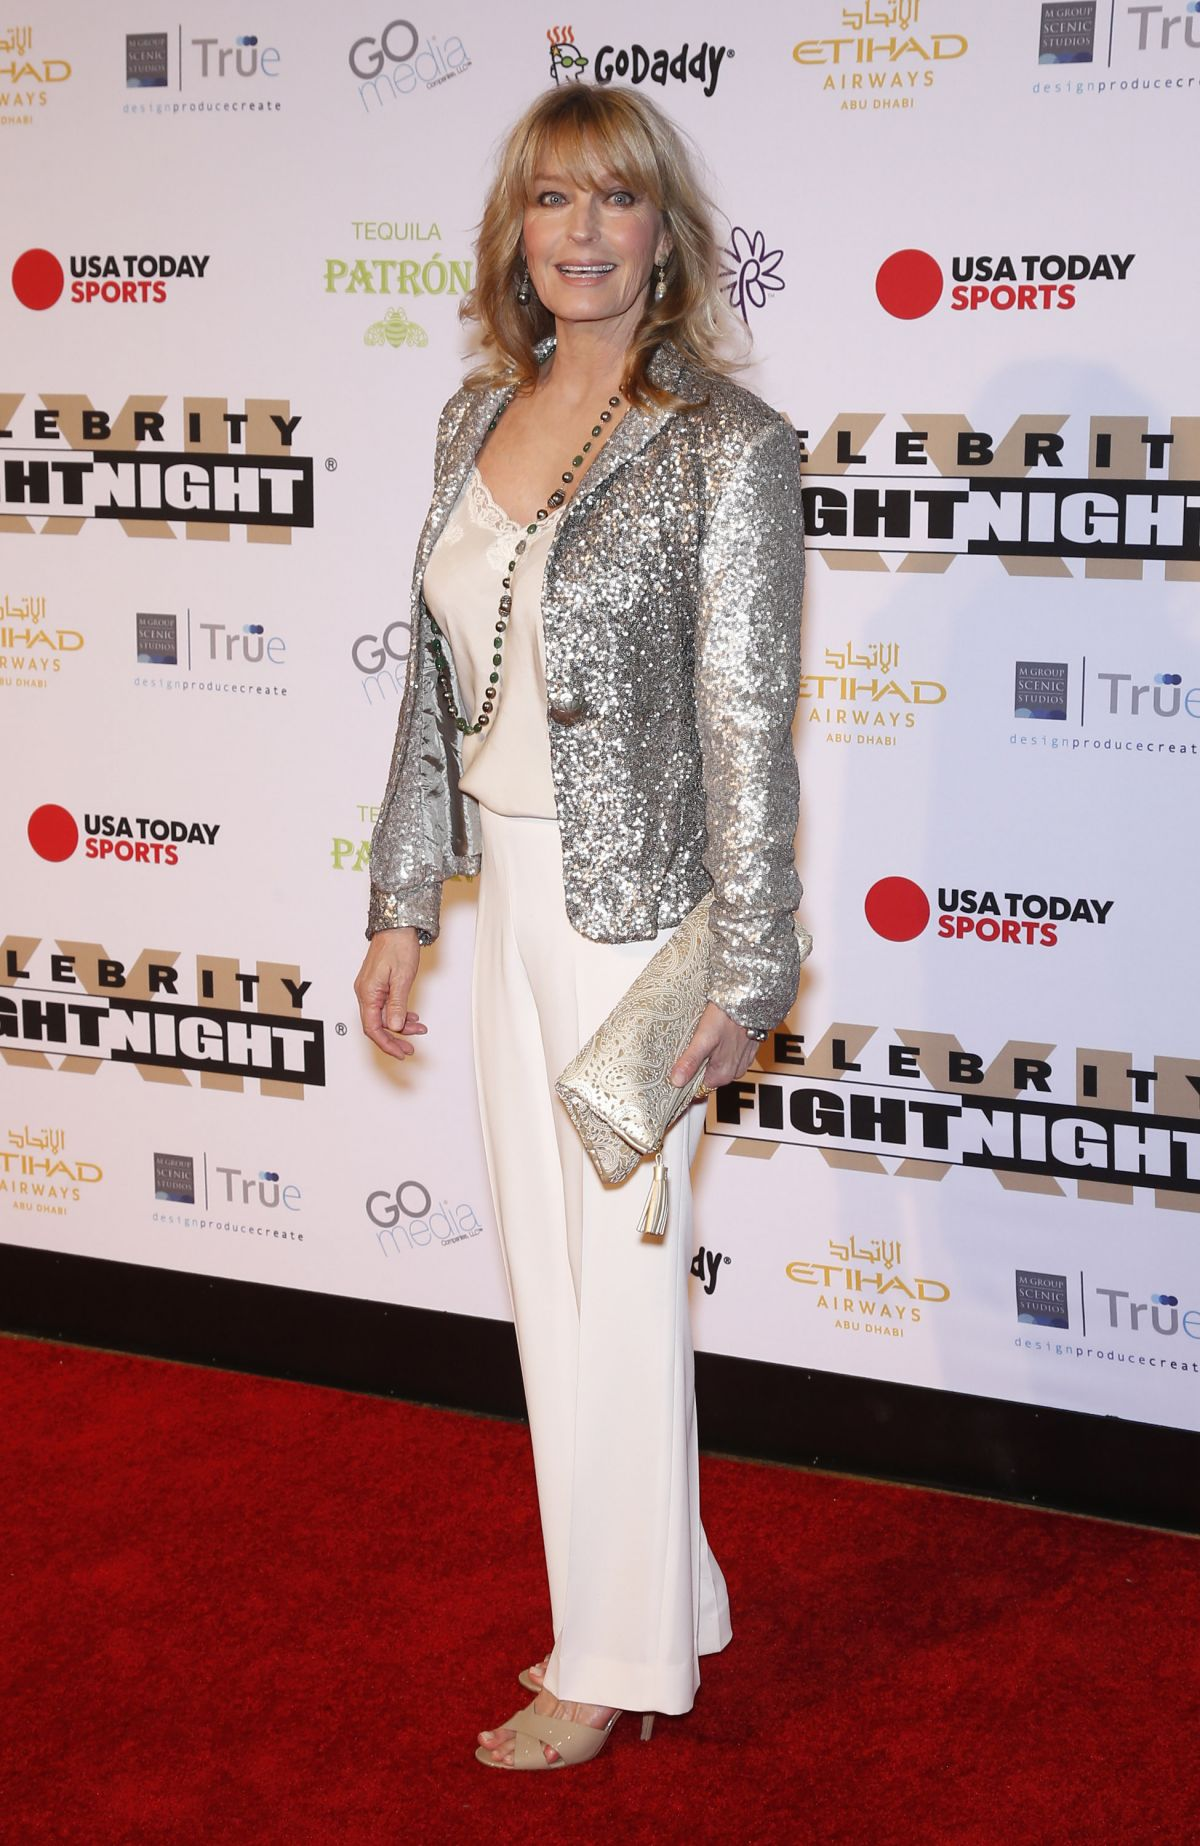 BO DEREK at Muhammad Ali's Celebirty Fight Night XXII in Phoenix 04/09/2016